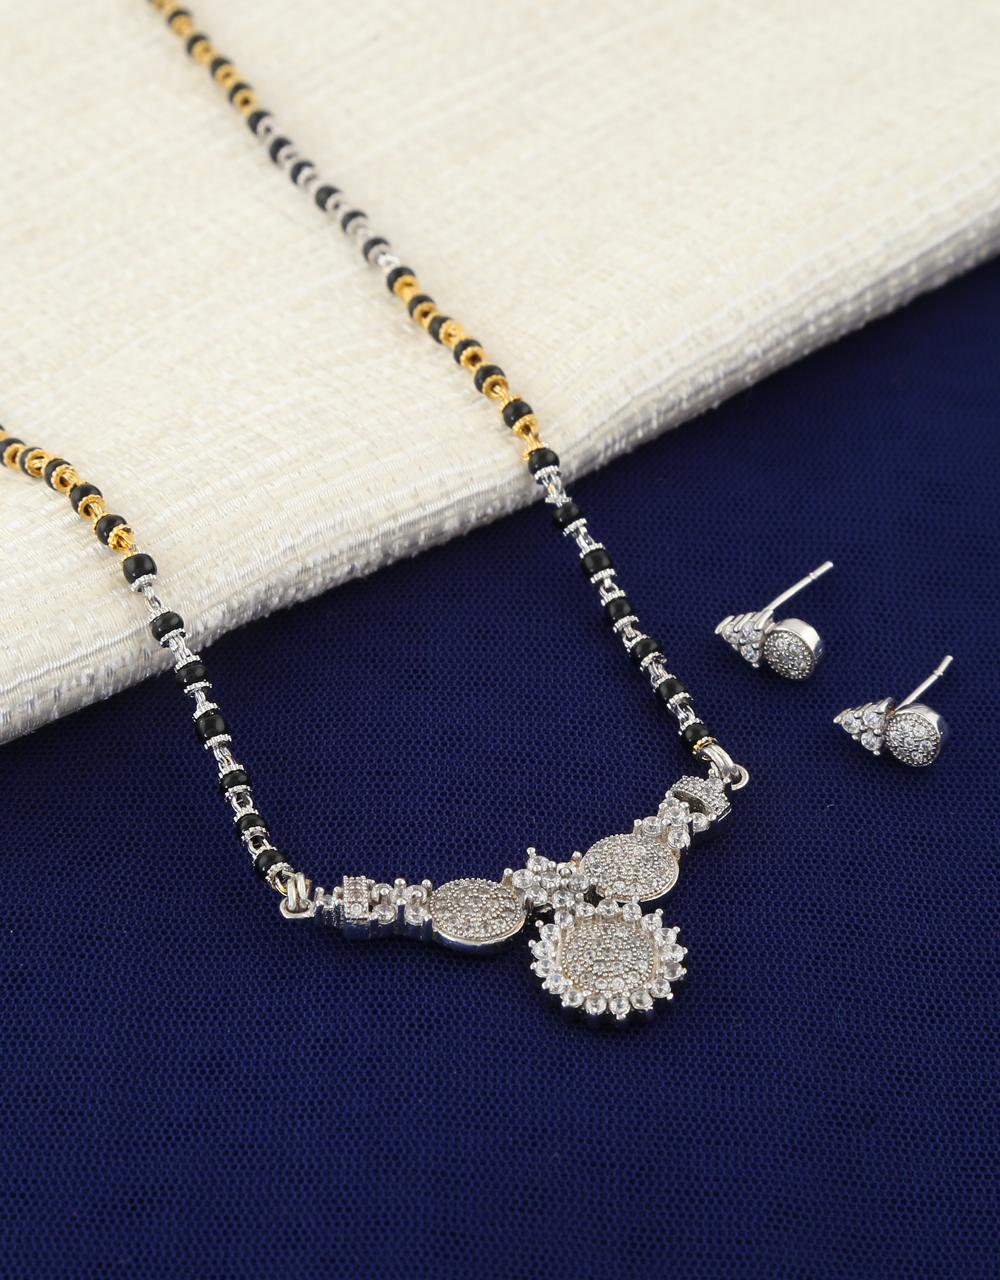 ca7c75168 Fashionable Silver-Gold Tone Wati Mangalsutra Artificial Design. Loading  zoom